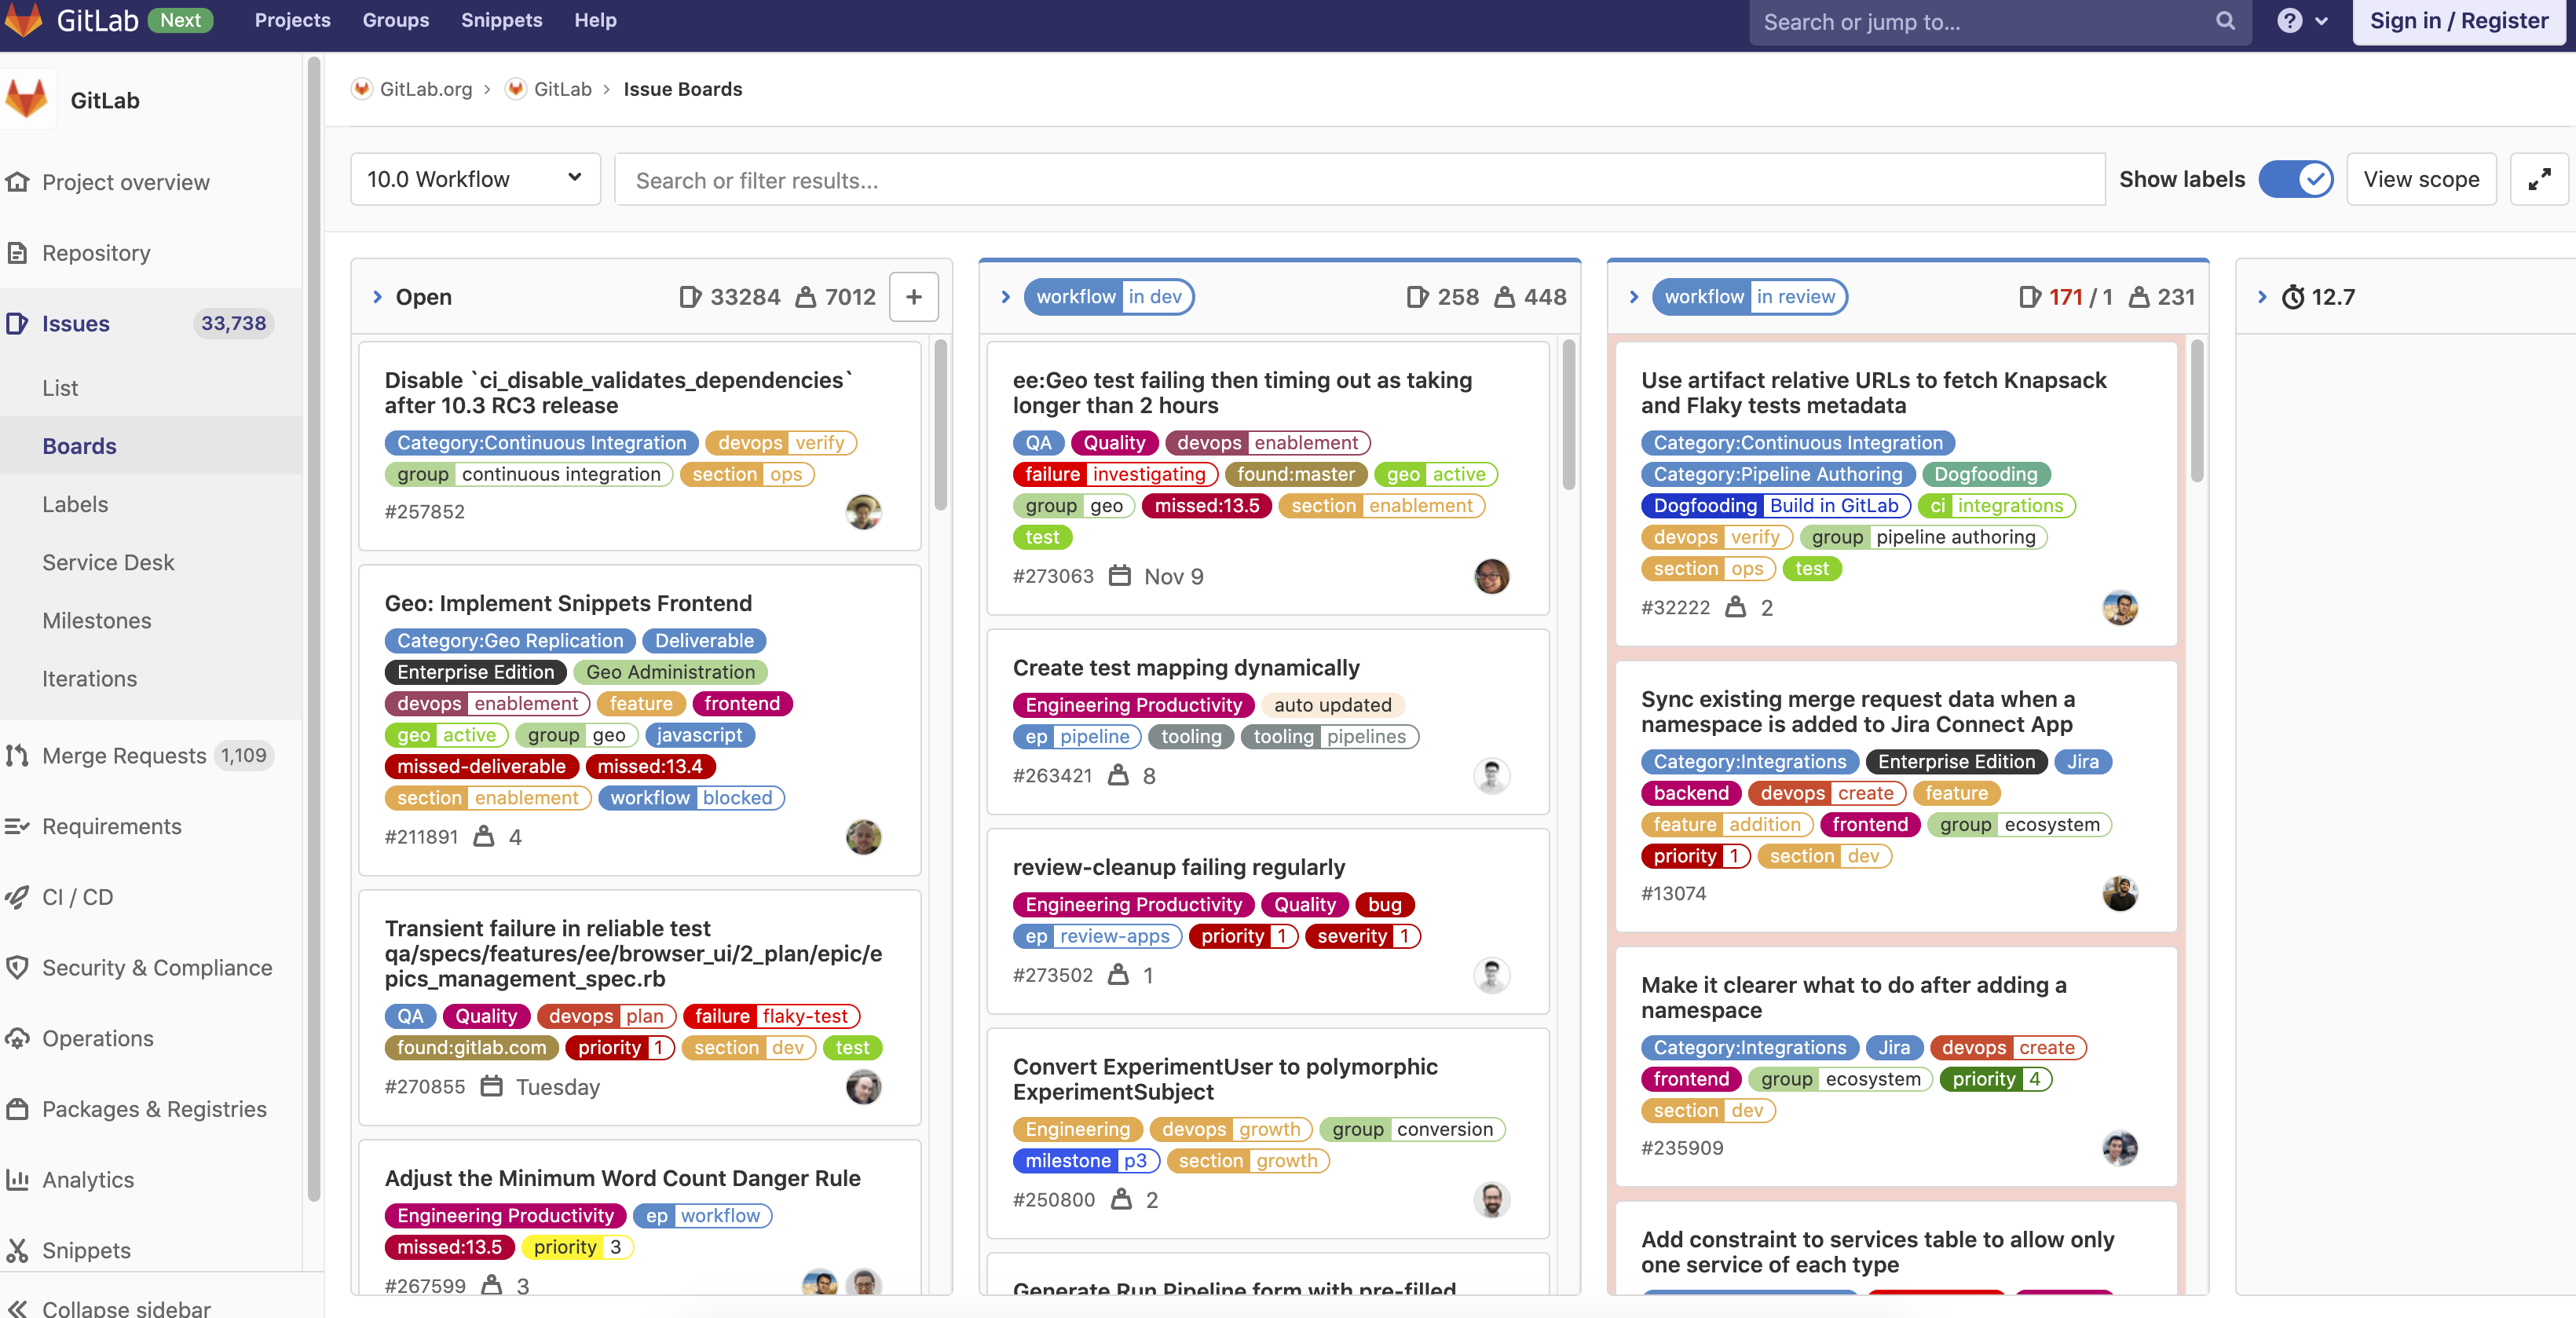 GitLab board view graphic